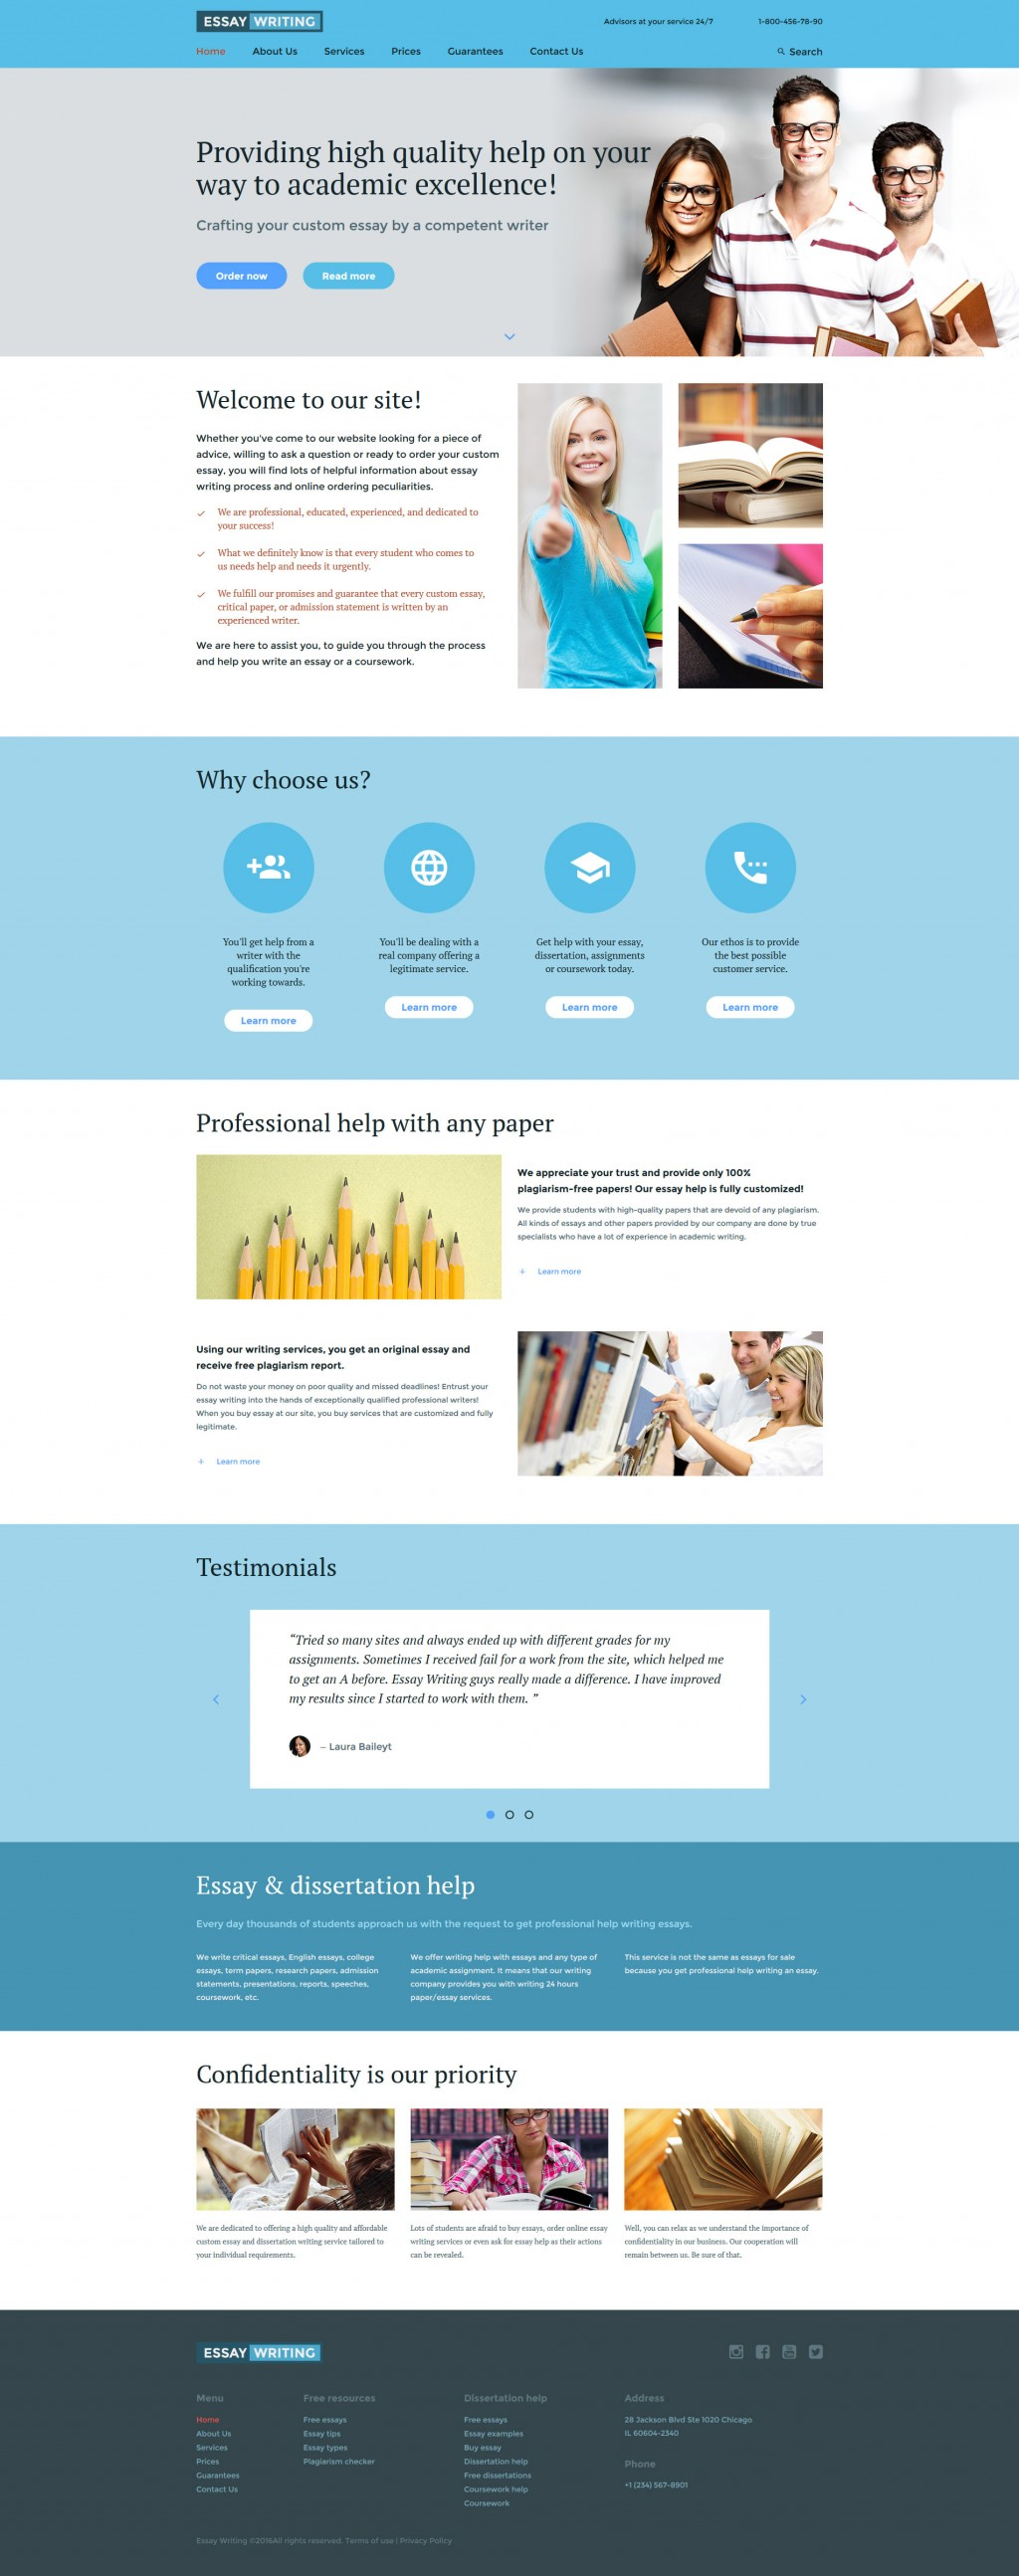 003 Essay Example Writing Website Template 59201 Amazing Websites Reviews Uk Large